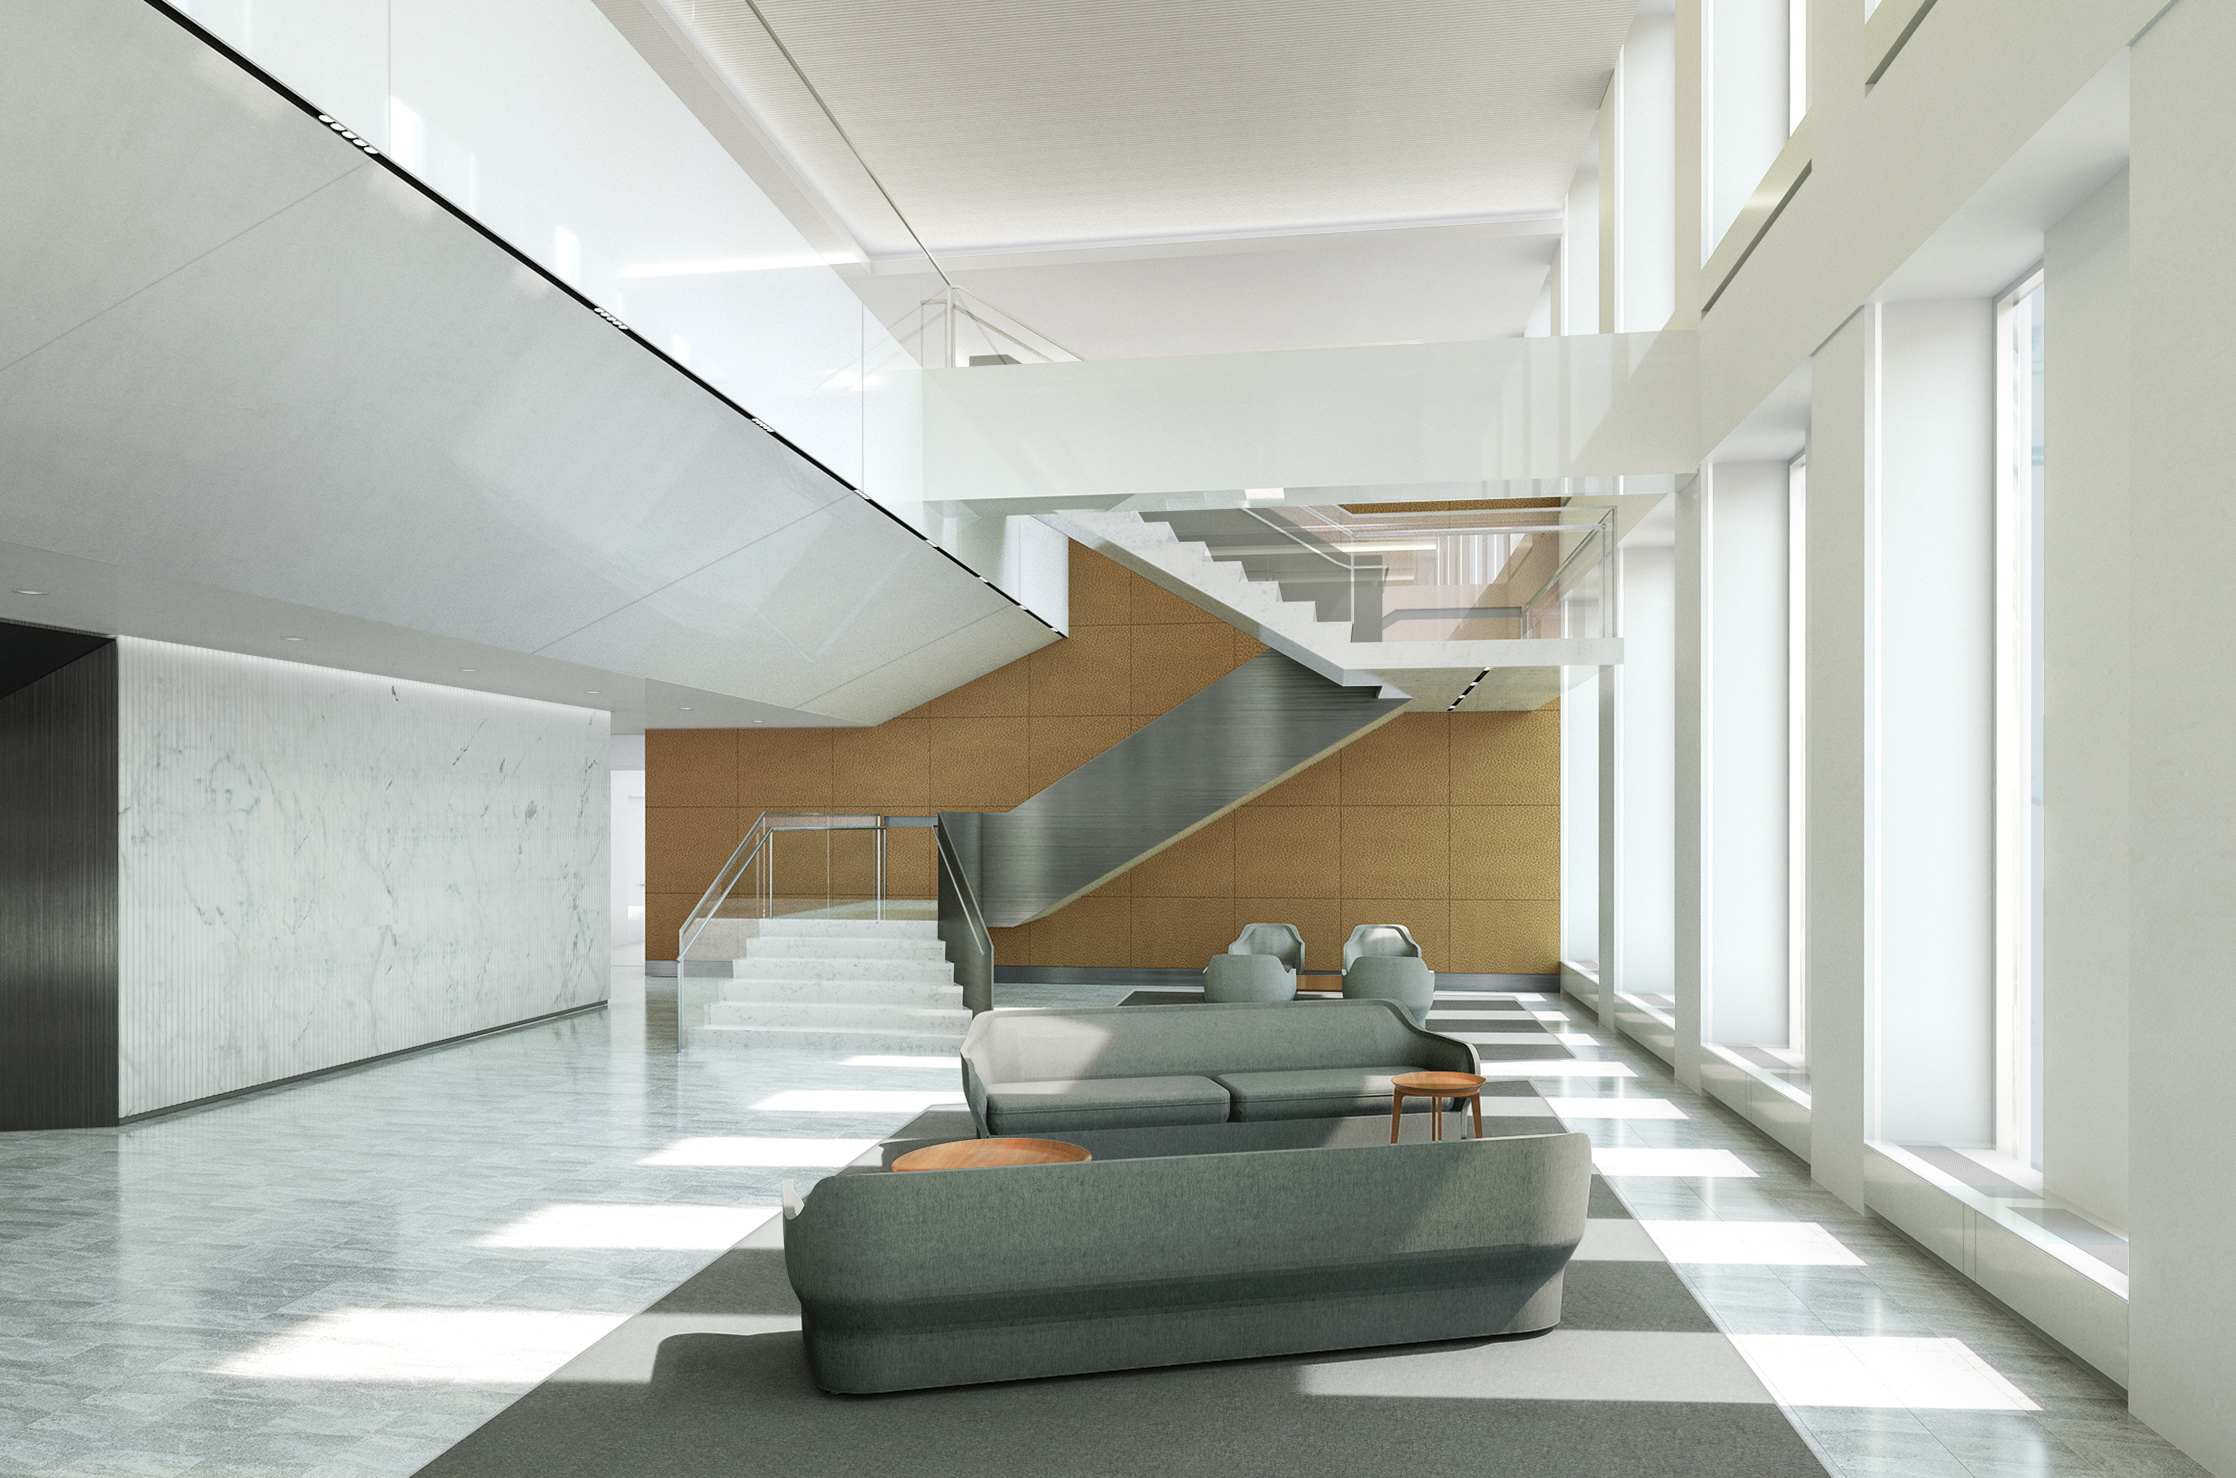 OFFICE LOBBY CONCEPT   New York City, New York |   Client:  HOK NYC